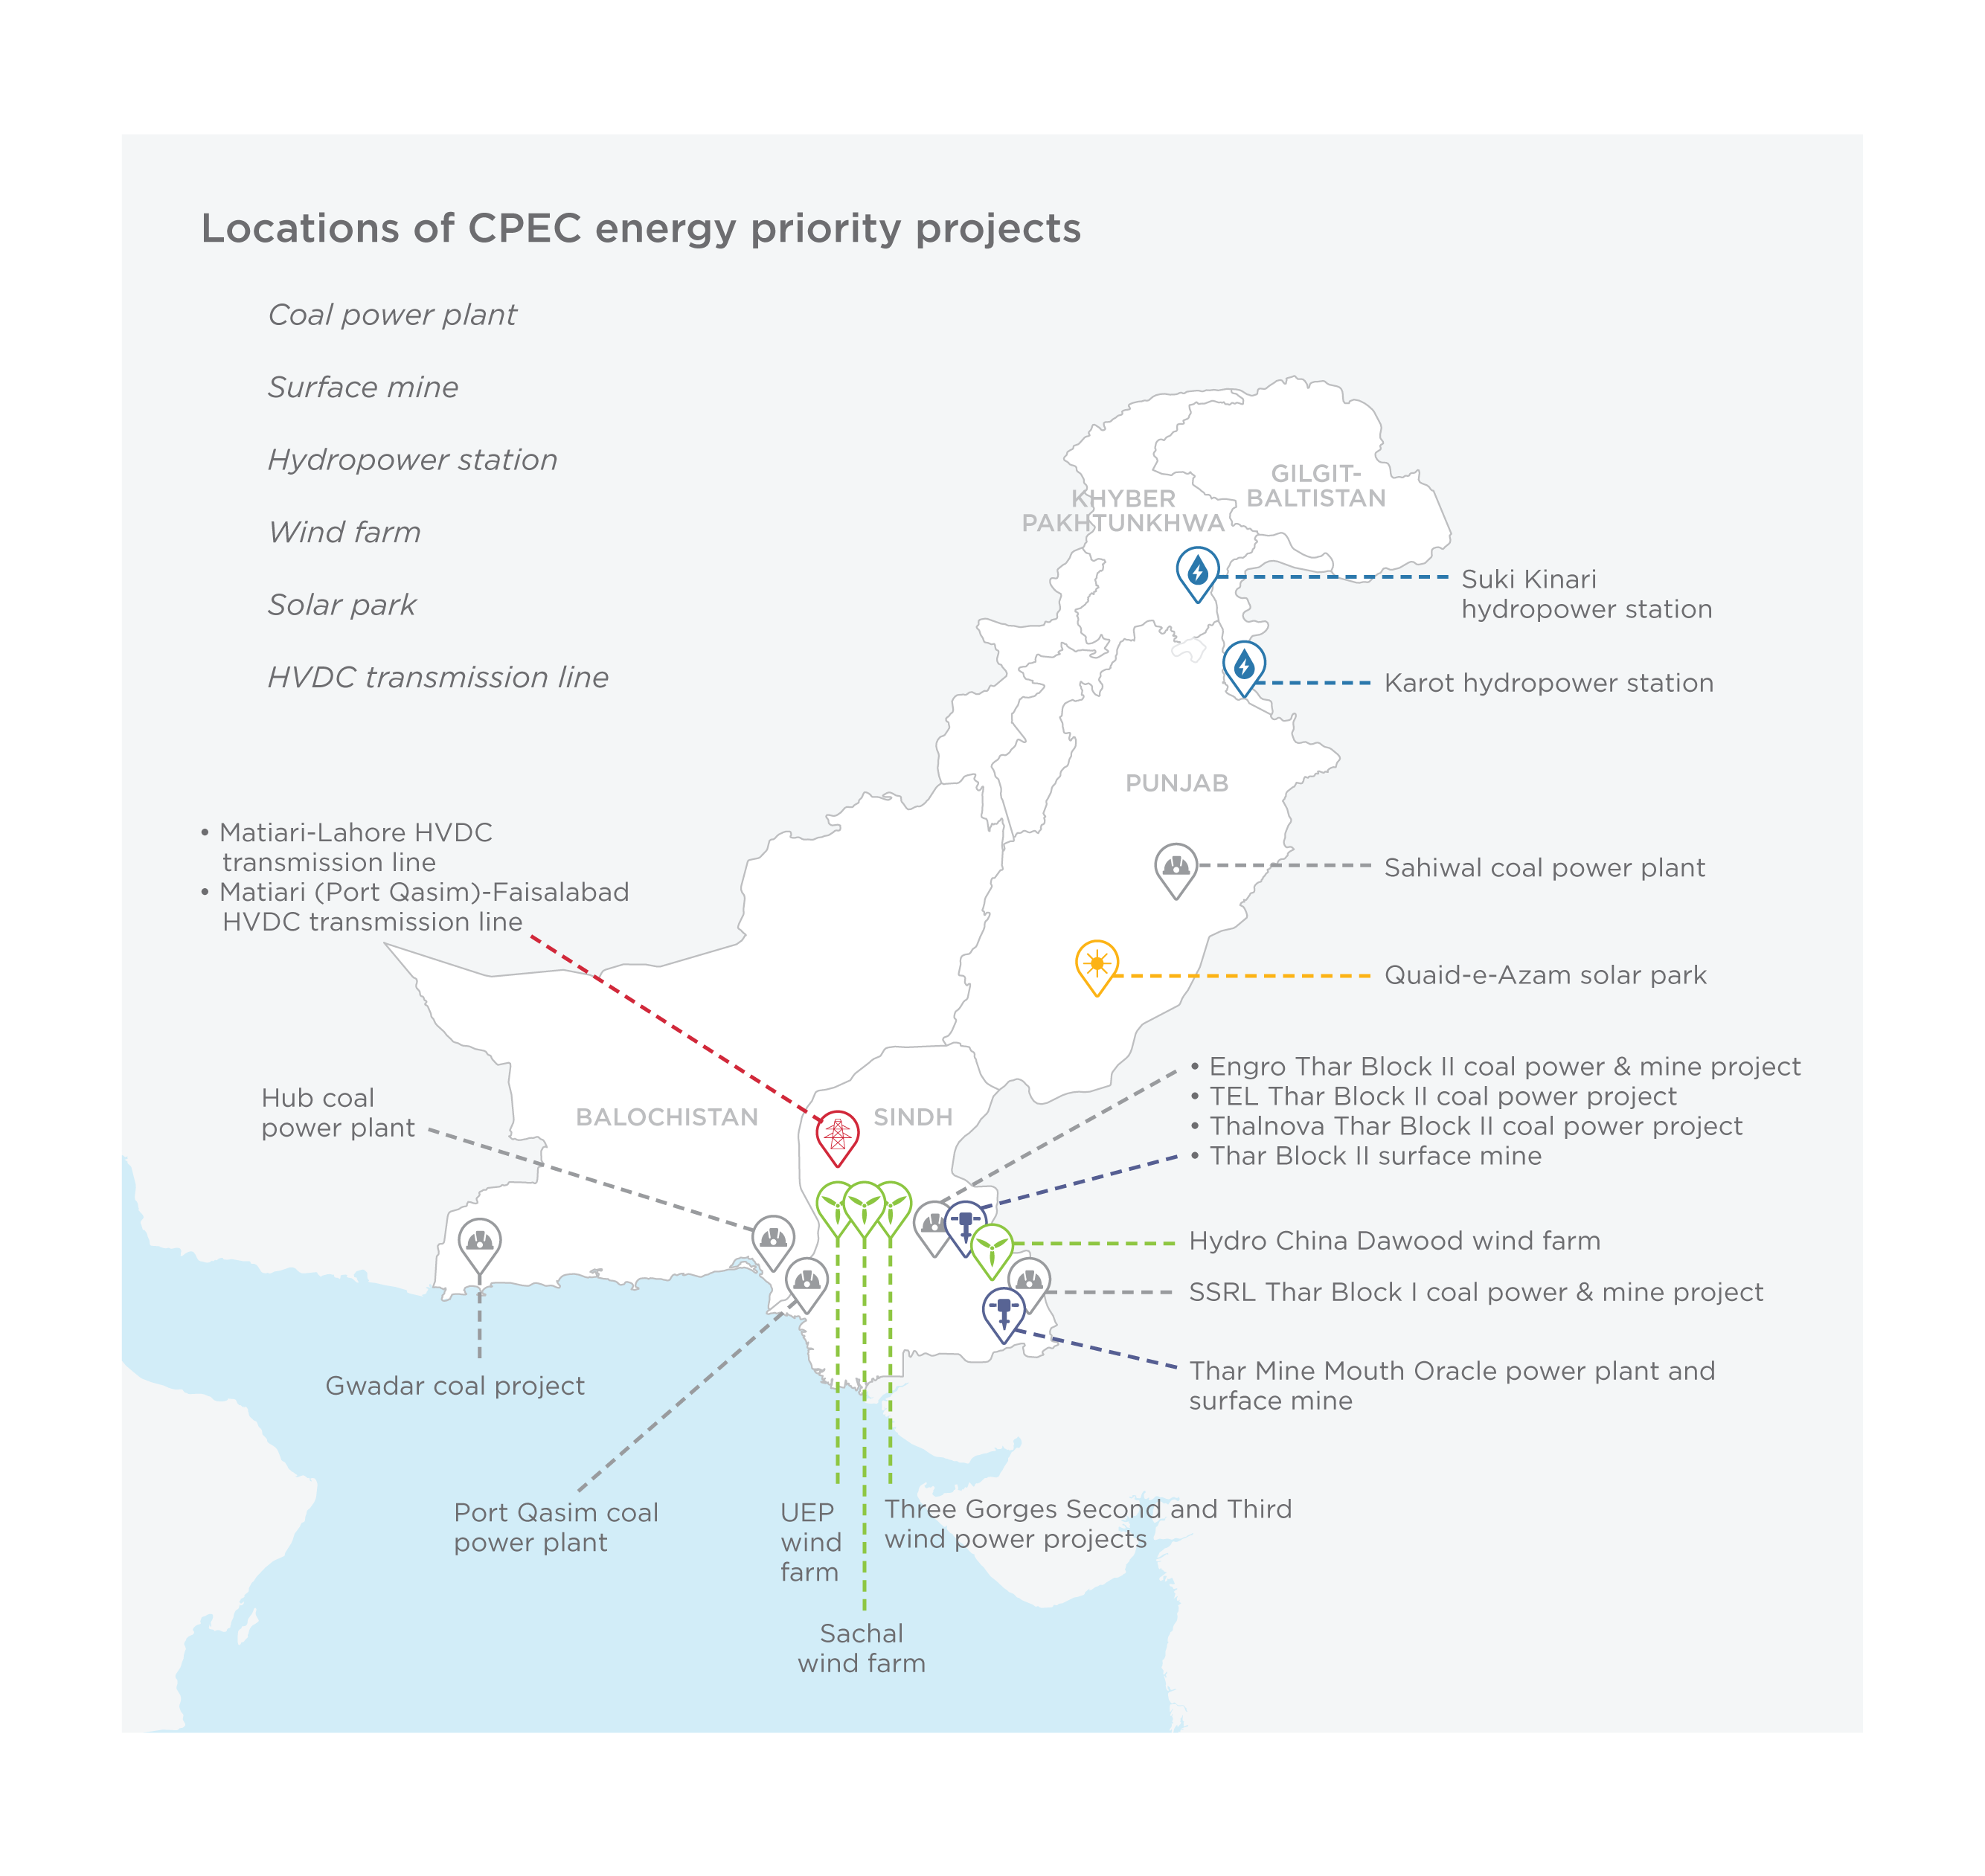 Map of LOCATIONS OF CPEC ENERGY PRIORITY PROJECTS